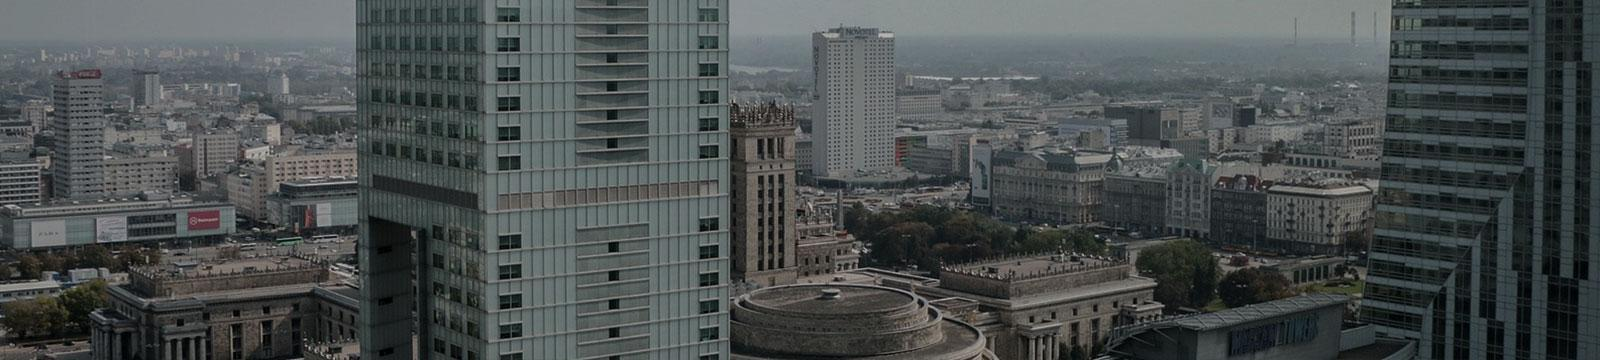 6 reasons why you should produce your software and IT services in Poland